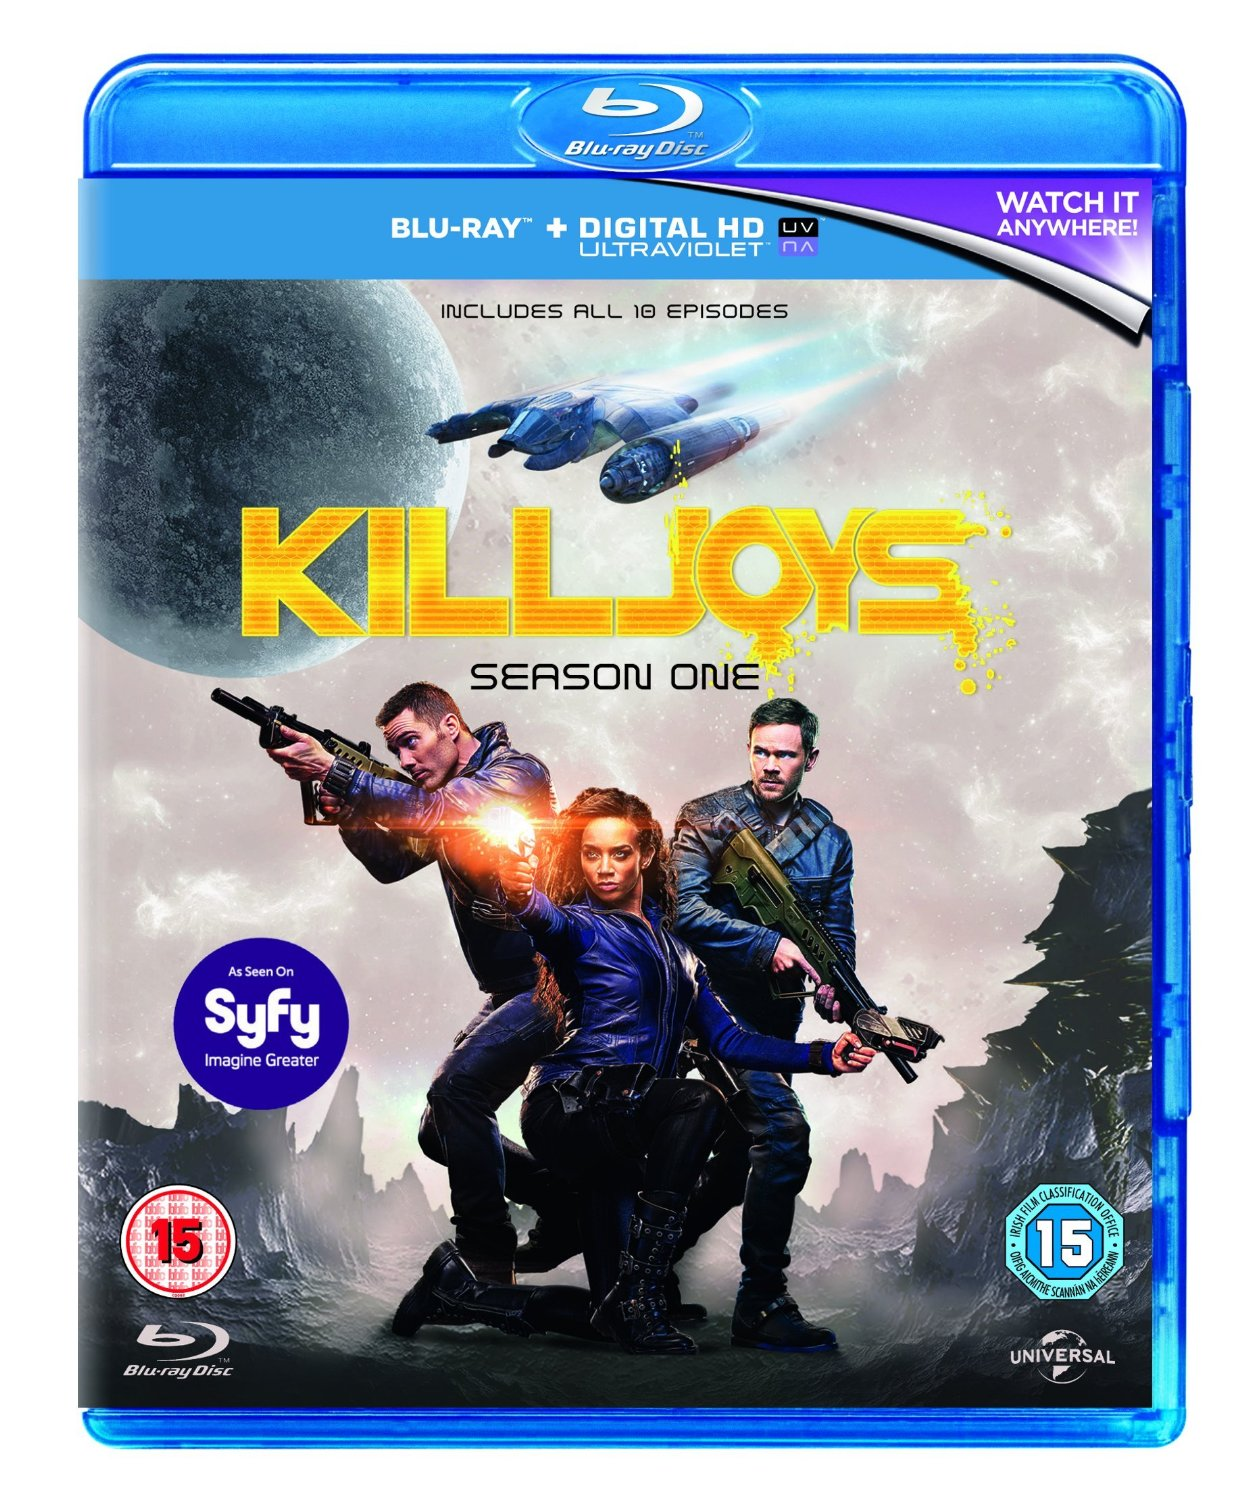 Killjoys Season 1 Blu-ray review